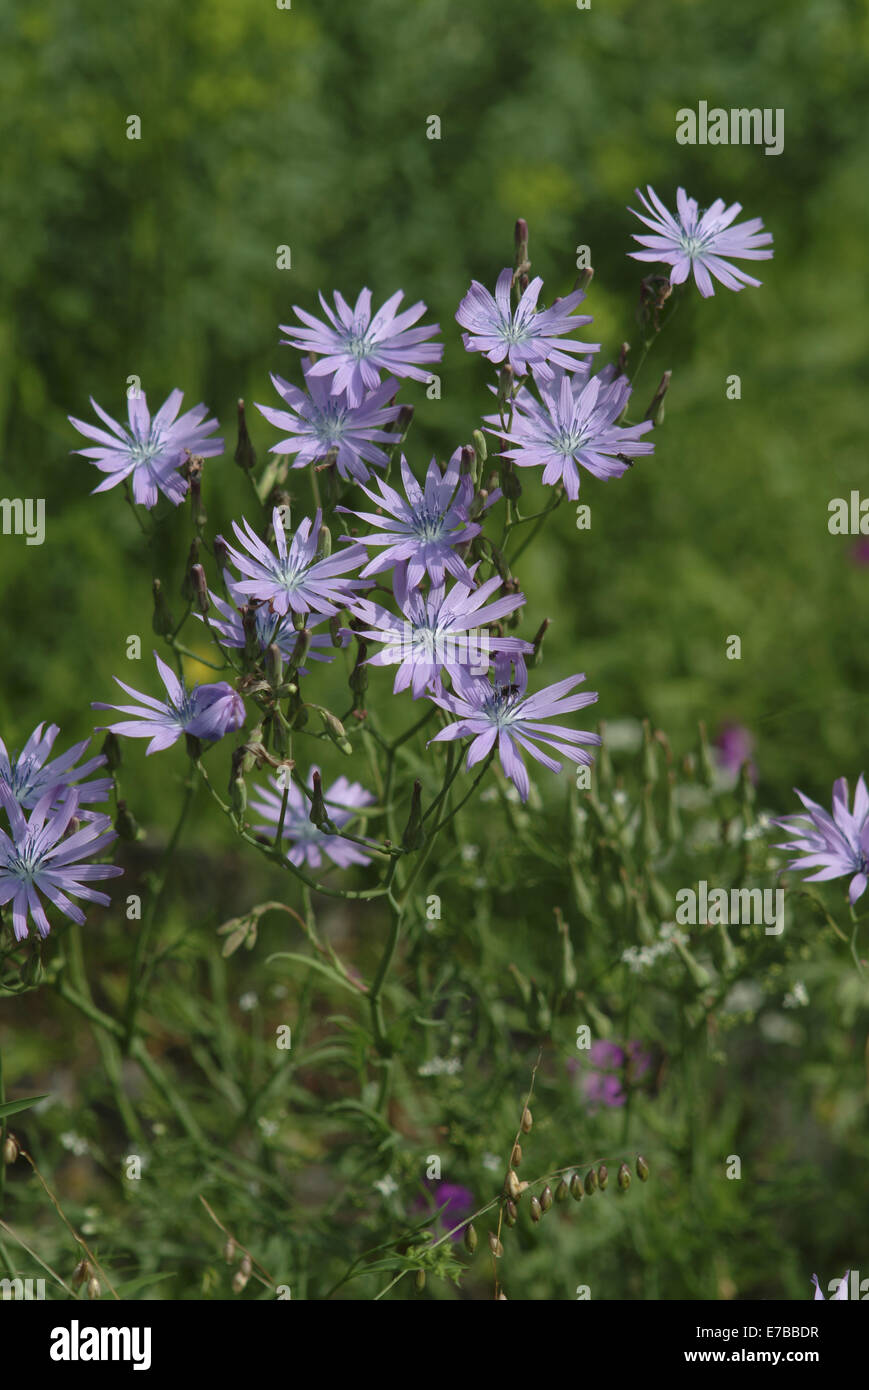 hairless blue sow-thistle, cicerbita plumieri - Stock Image